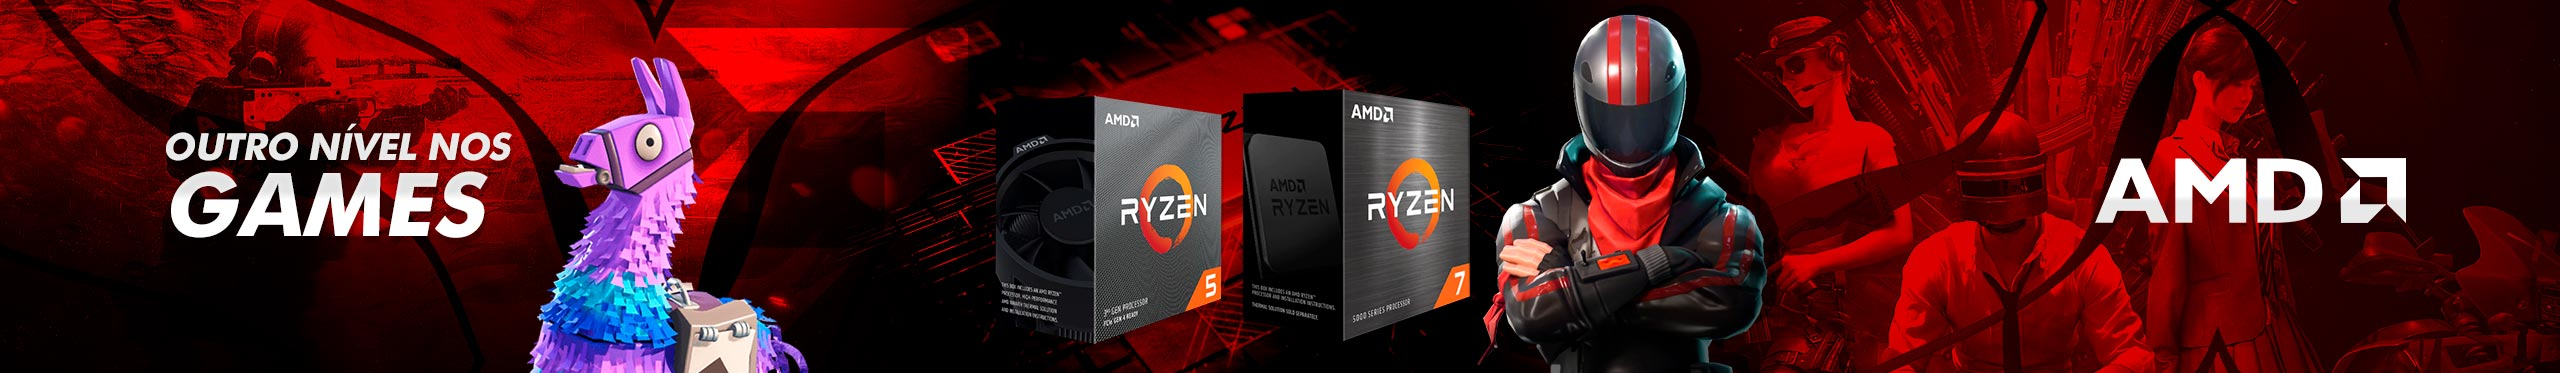 Banner AMD Processadores Abril 2021